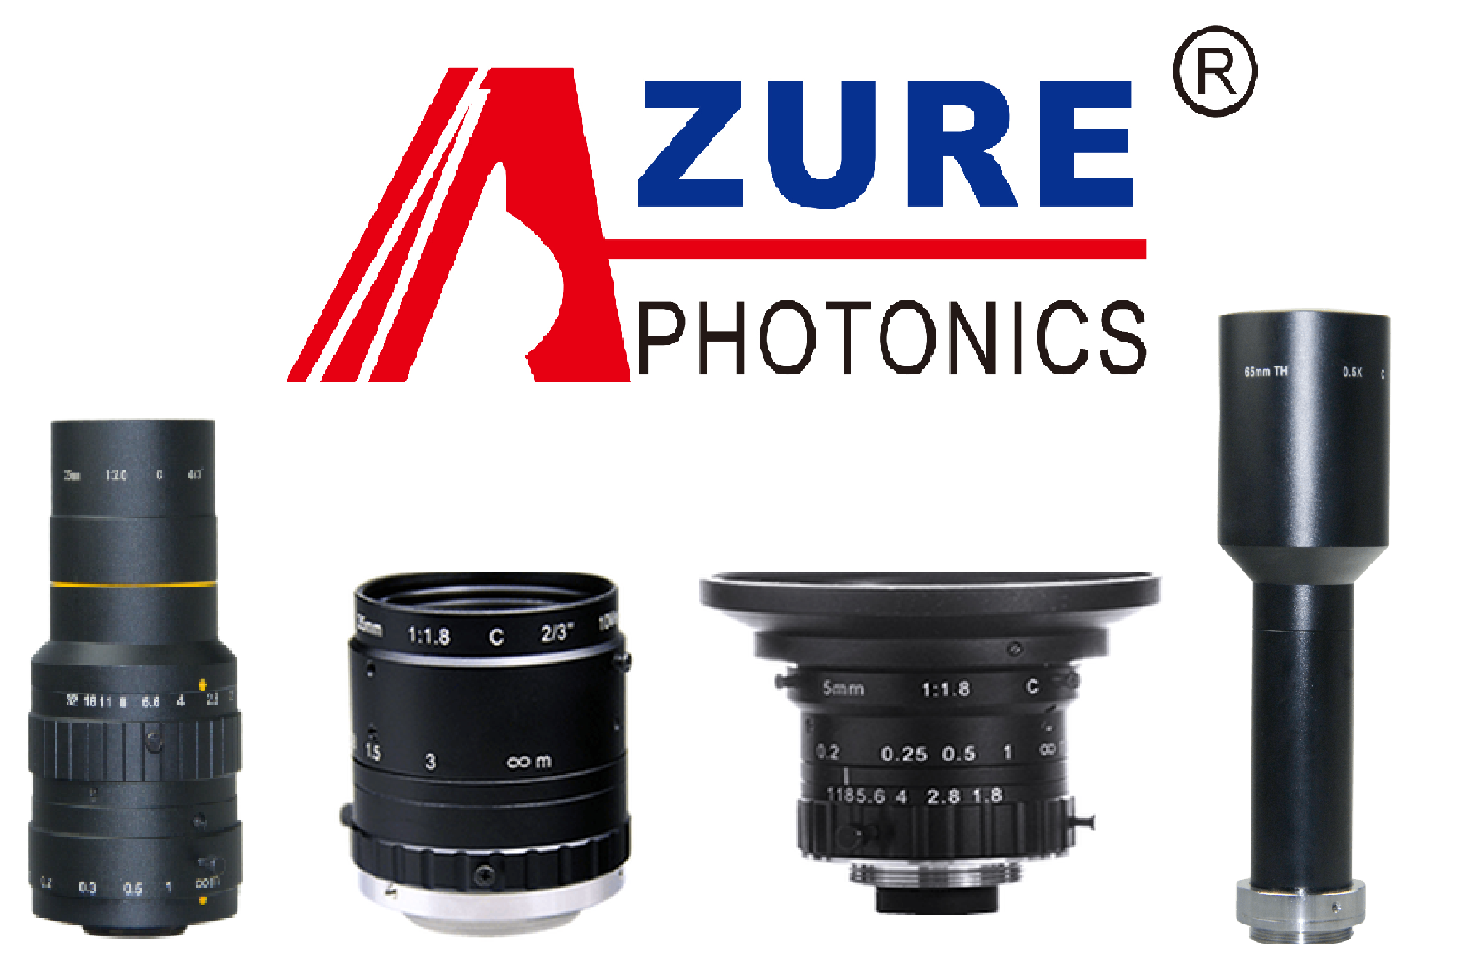 Azure Photonics